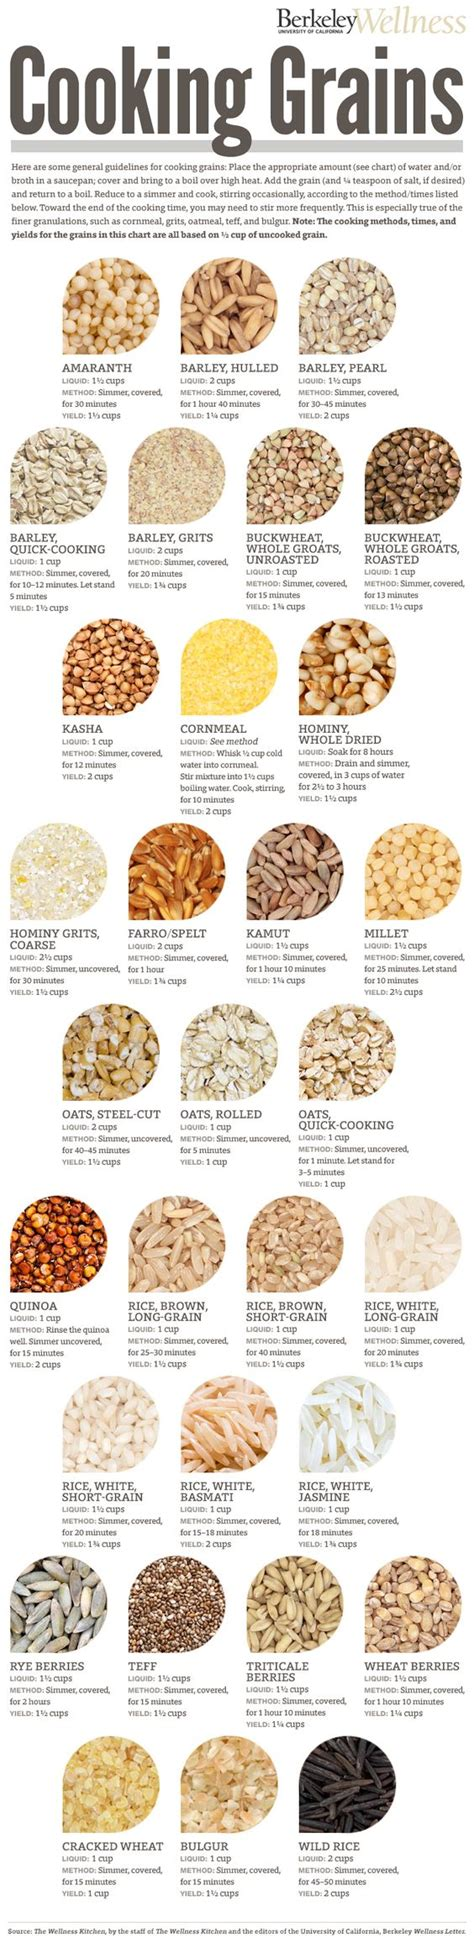 7 whole grains list how to cook grains 18 grains and how to cook them